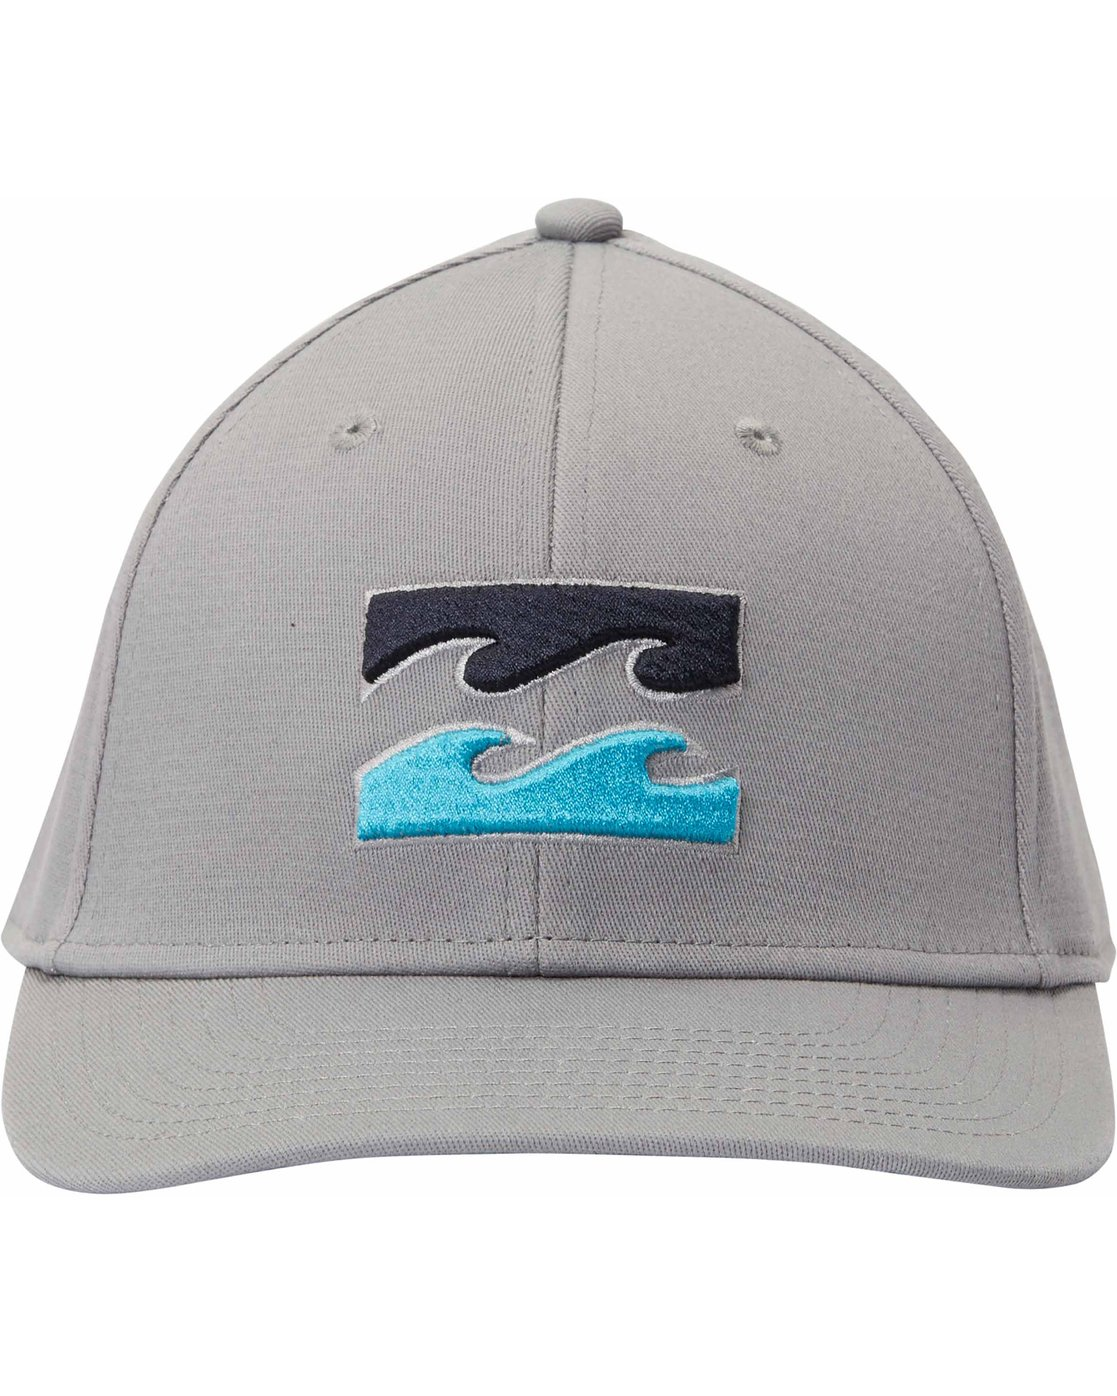 90017b1932788 where to buy billabong white mike sweet tooth mens snapback hat 8c318  9f73d  usa 1 all day stretch fit solid hat grey mahtjast billabong 87813  eb181